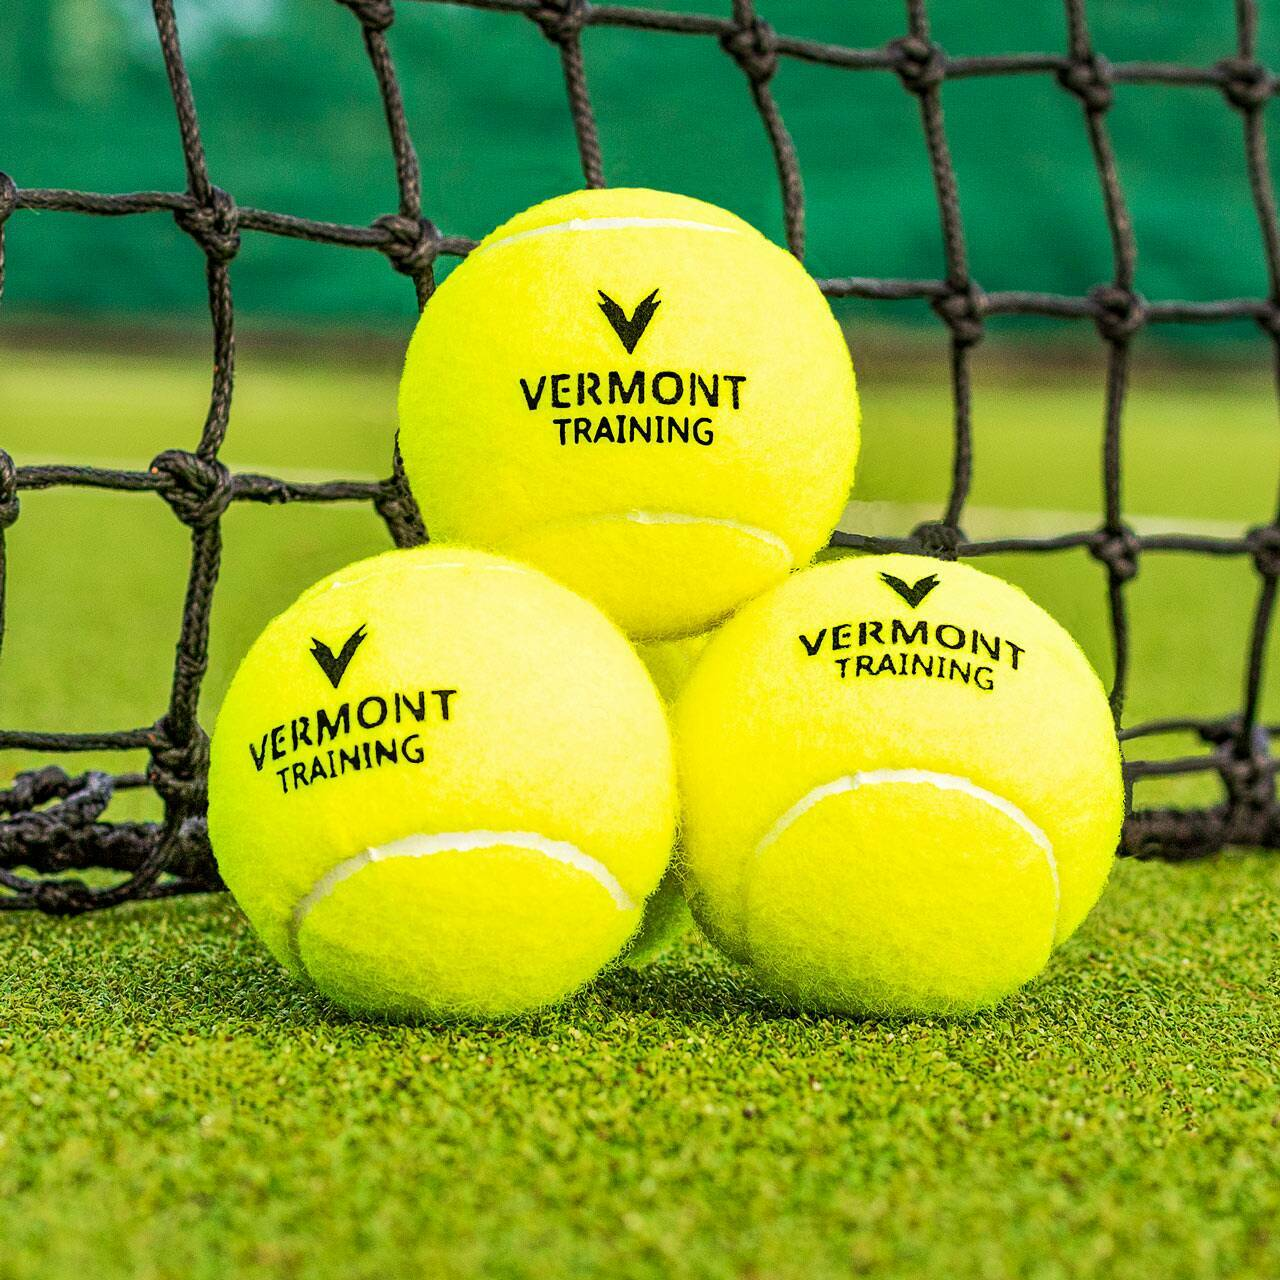 Practice Tennis Balls For All Tennis Court Surfaces | Vermont Tennis Balls